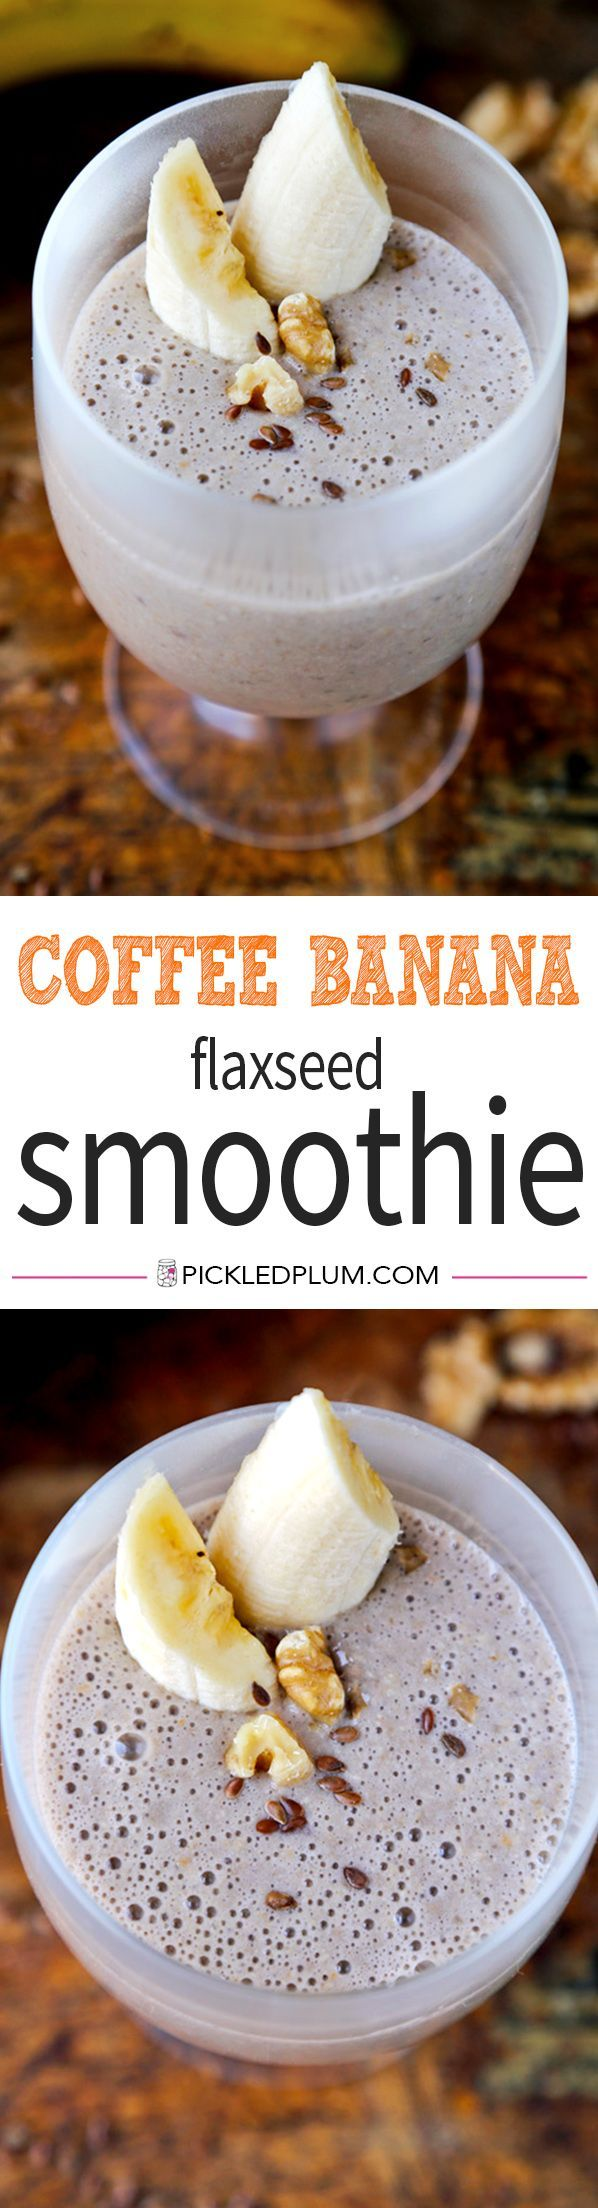 Coffee-Banana-Flaxseed Smoothie - The sweetest way to get a caffeine jolt in the morning! We love this for breakfast! Recipe, drinks, smoothie, breakfast, healthy | pickledplum.com